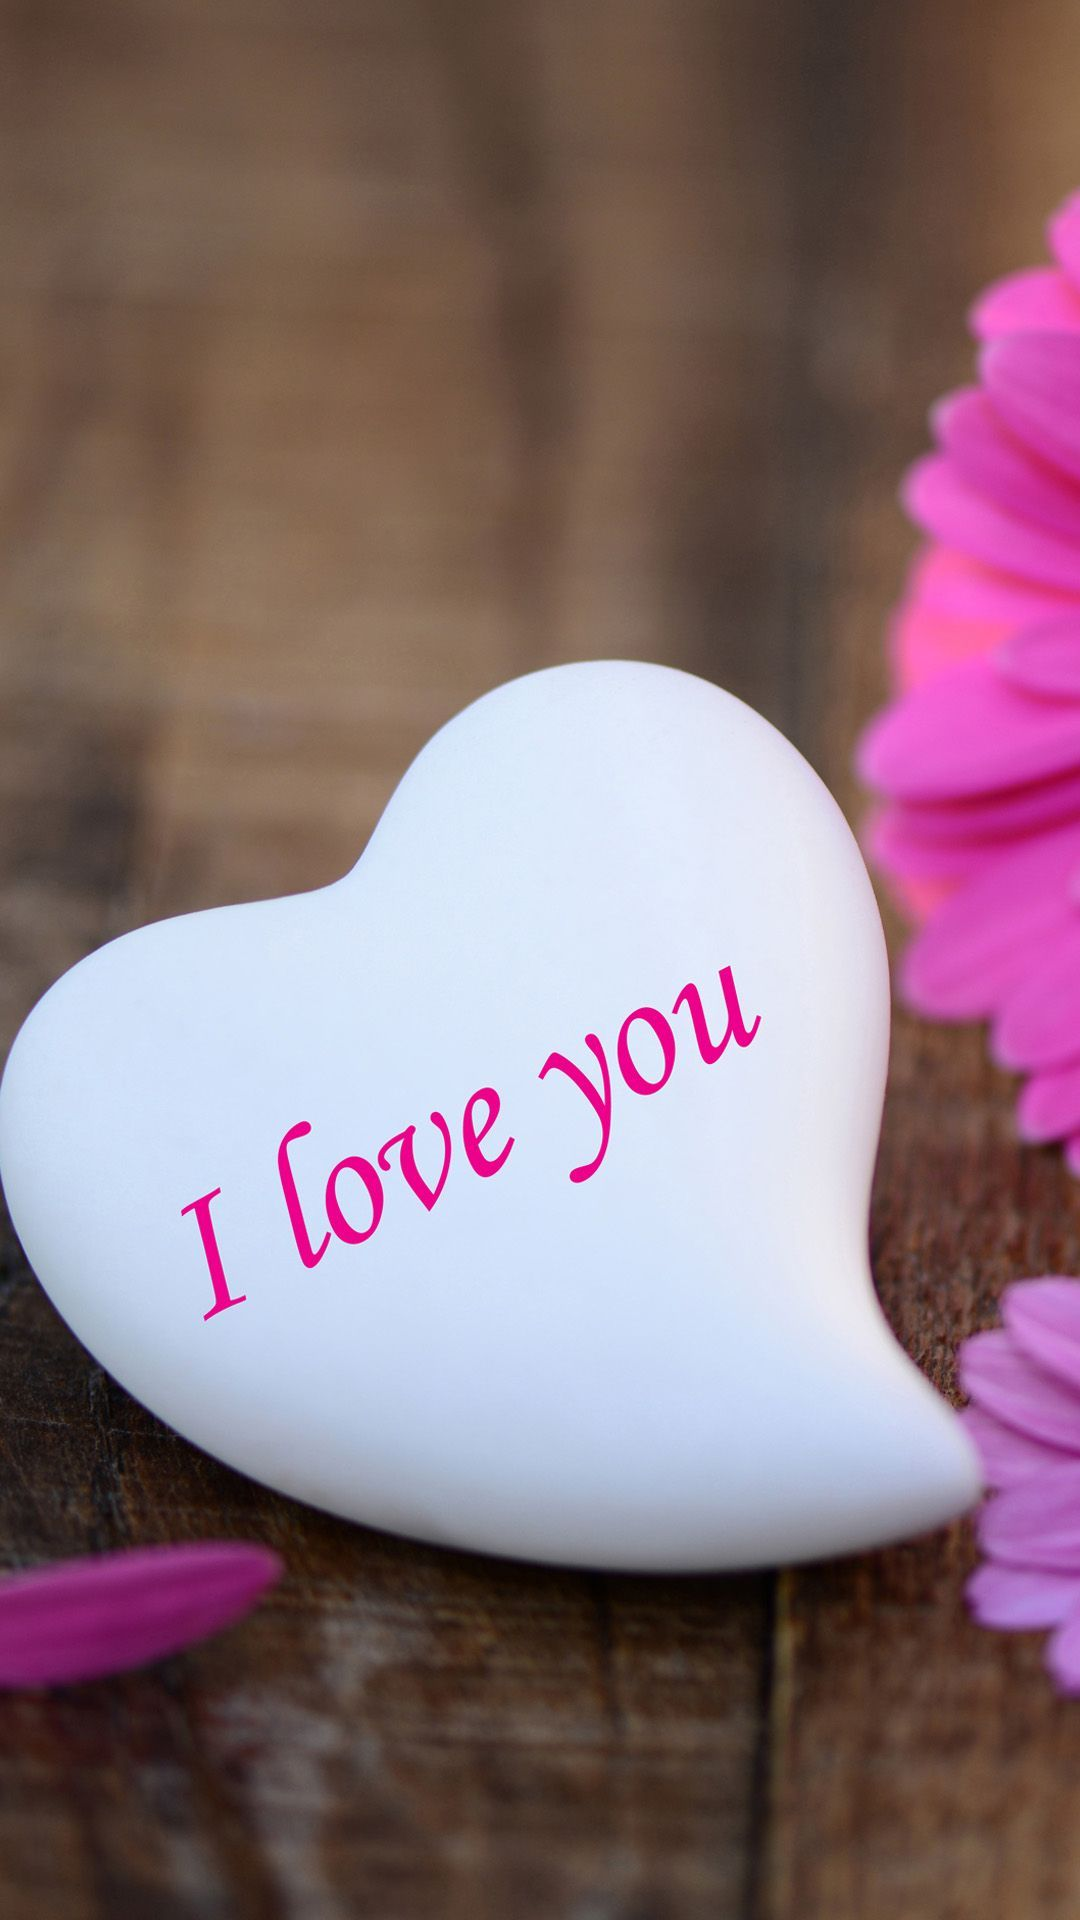 Love Hd Iphone Wallpapers » Hupages » Download Iphone Wallpapers ...